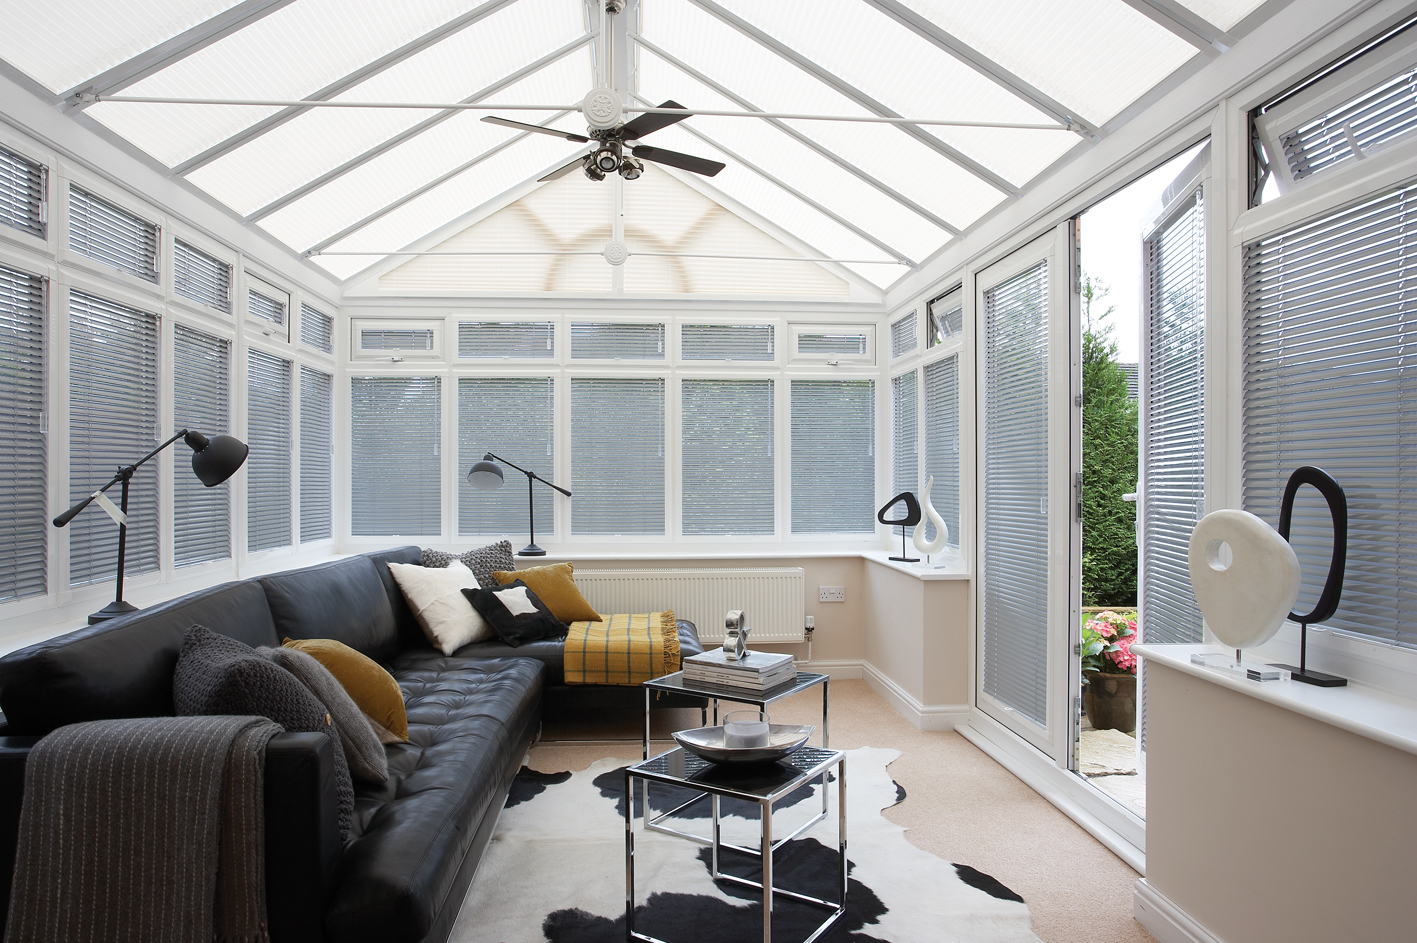 Made To Measure Conservatory Blinds In Falkirk Larber Scot Blinds